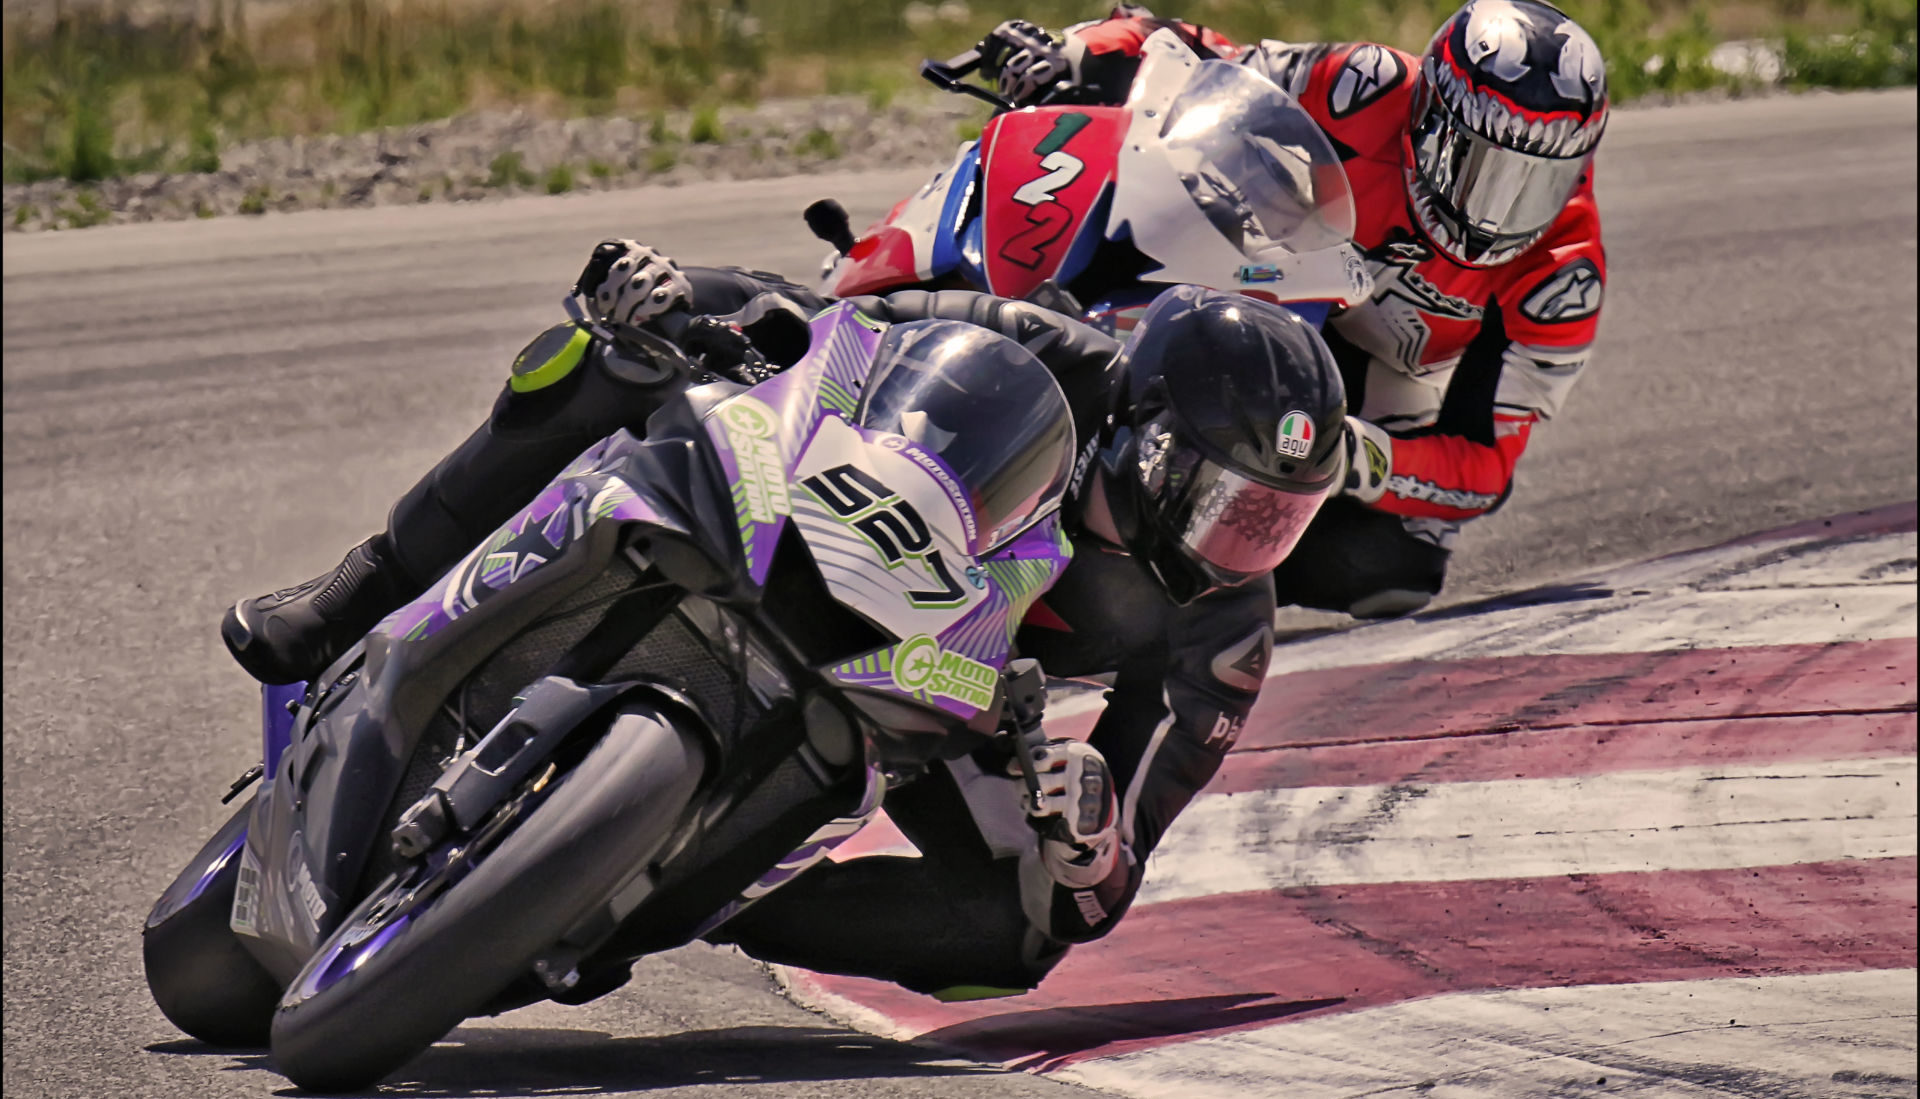 Jerry Hicks (527) fends off Genaro Lopez (122) into Turn 10 at Round 4 of UtahSBA's Utah Motorcycle Law Masters of the Mountains Race Series July 25th at Utah Motorsports Campus. Photo by Steve Midgley, courtesy UtahSBA.